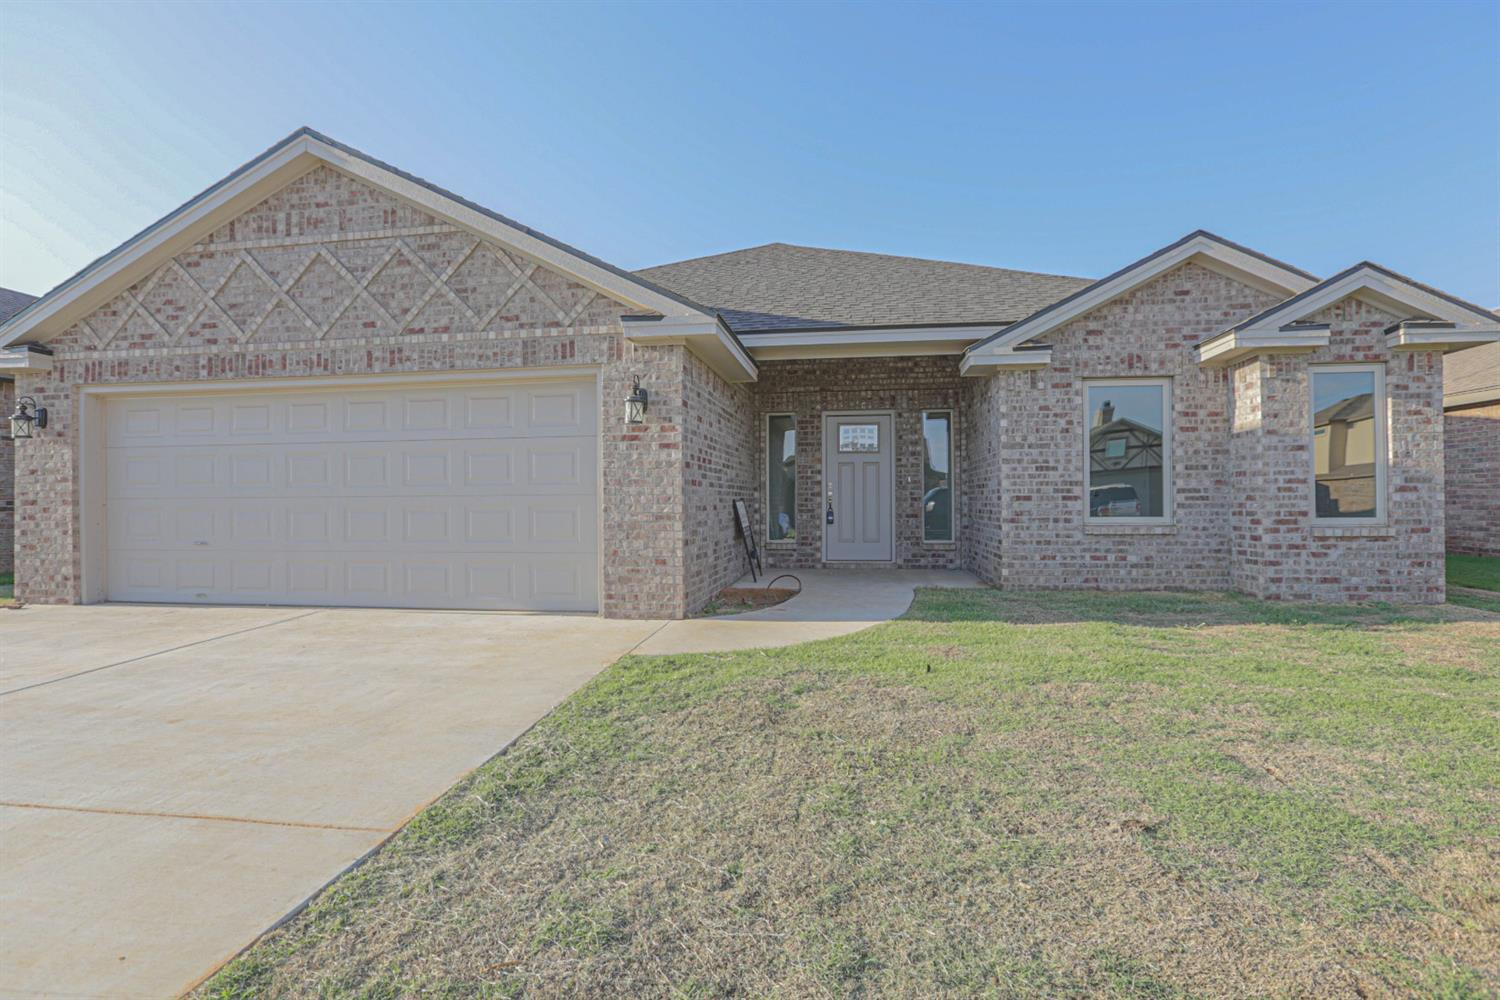 6961 23rd Street, Lubbock in Lubbock County, TX 79407 Home for Sale